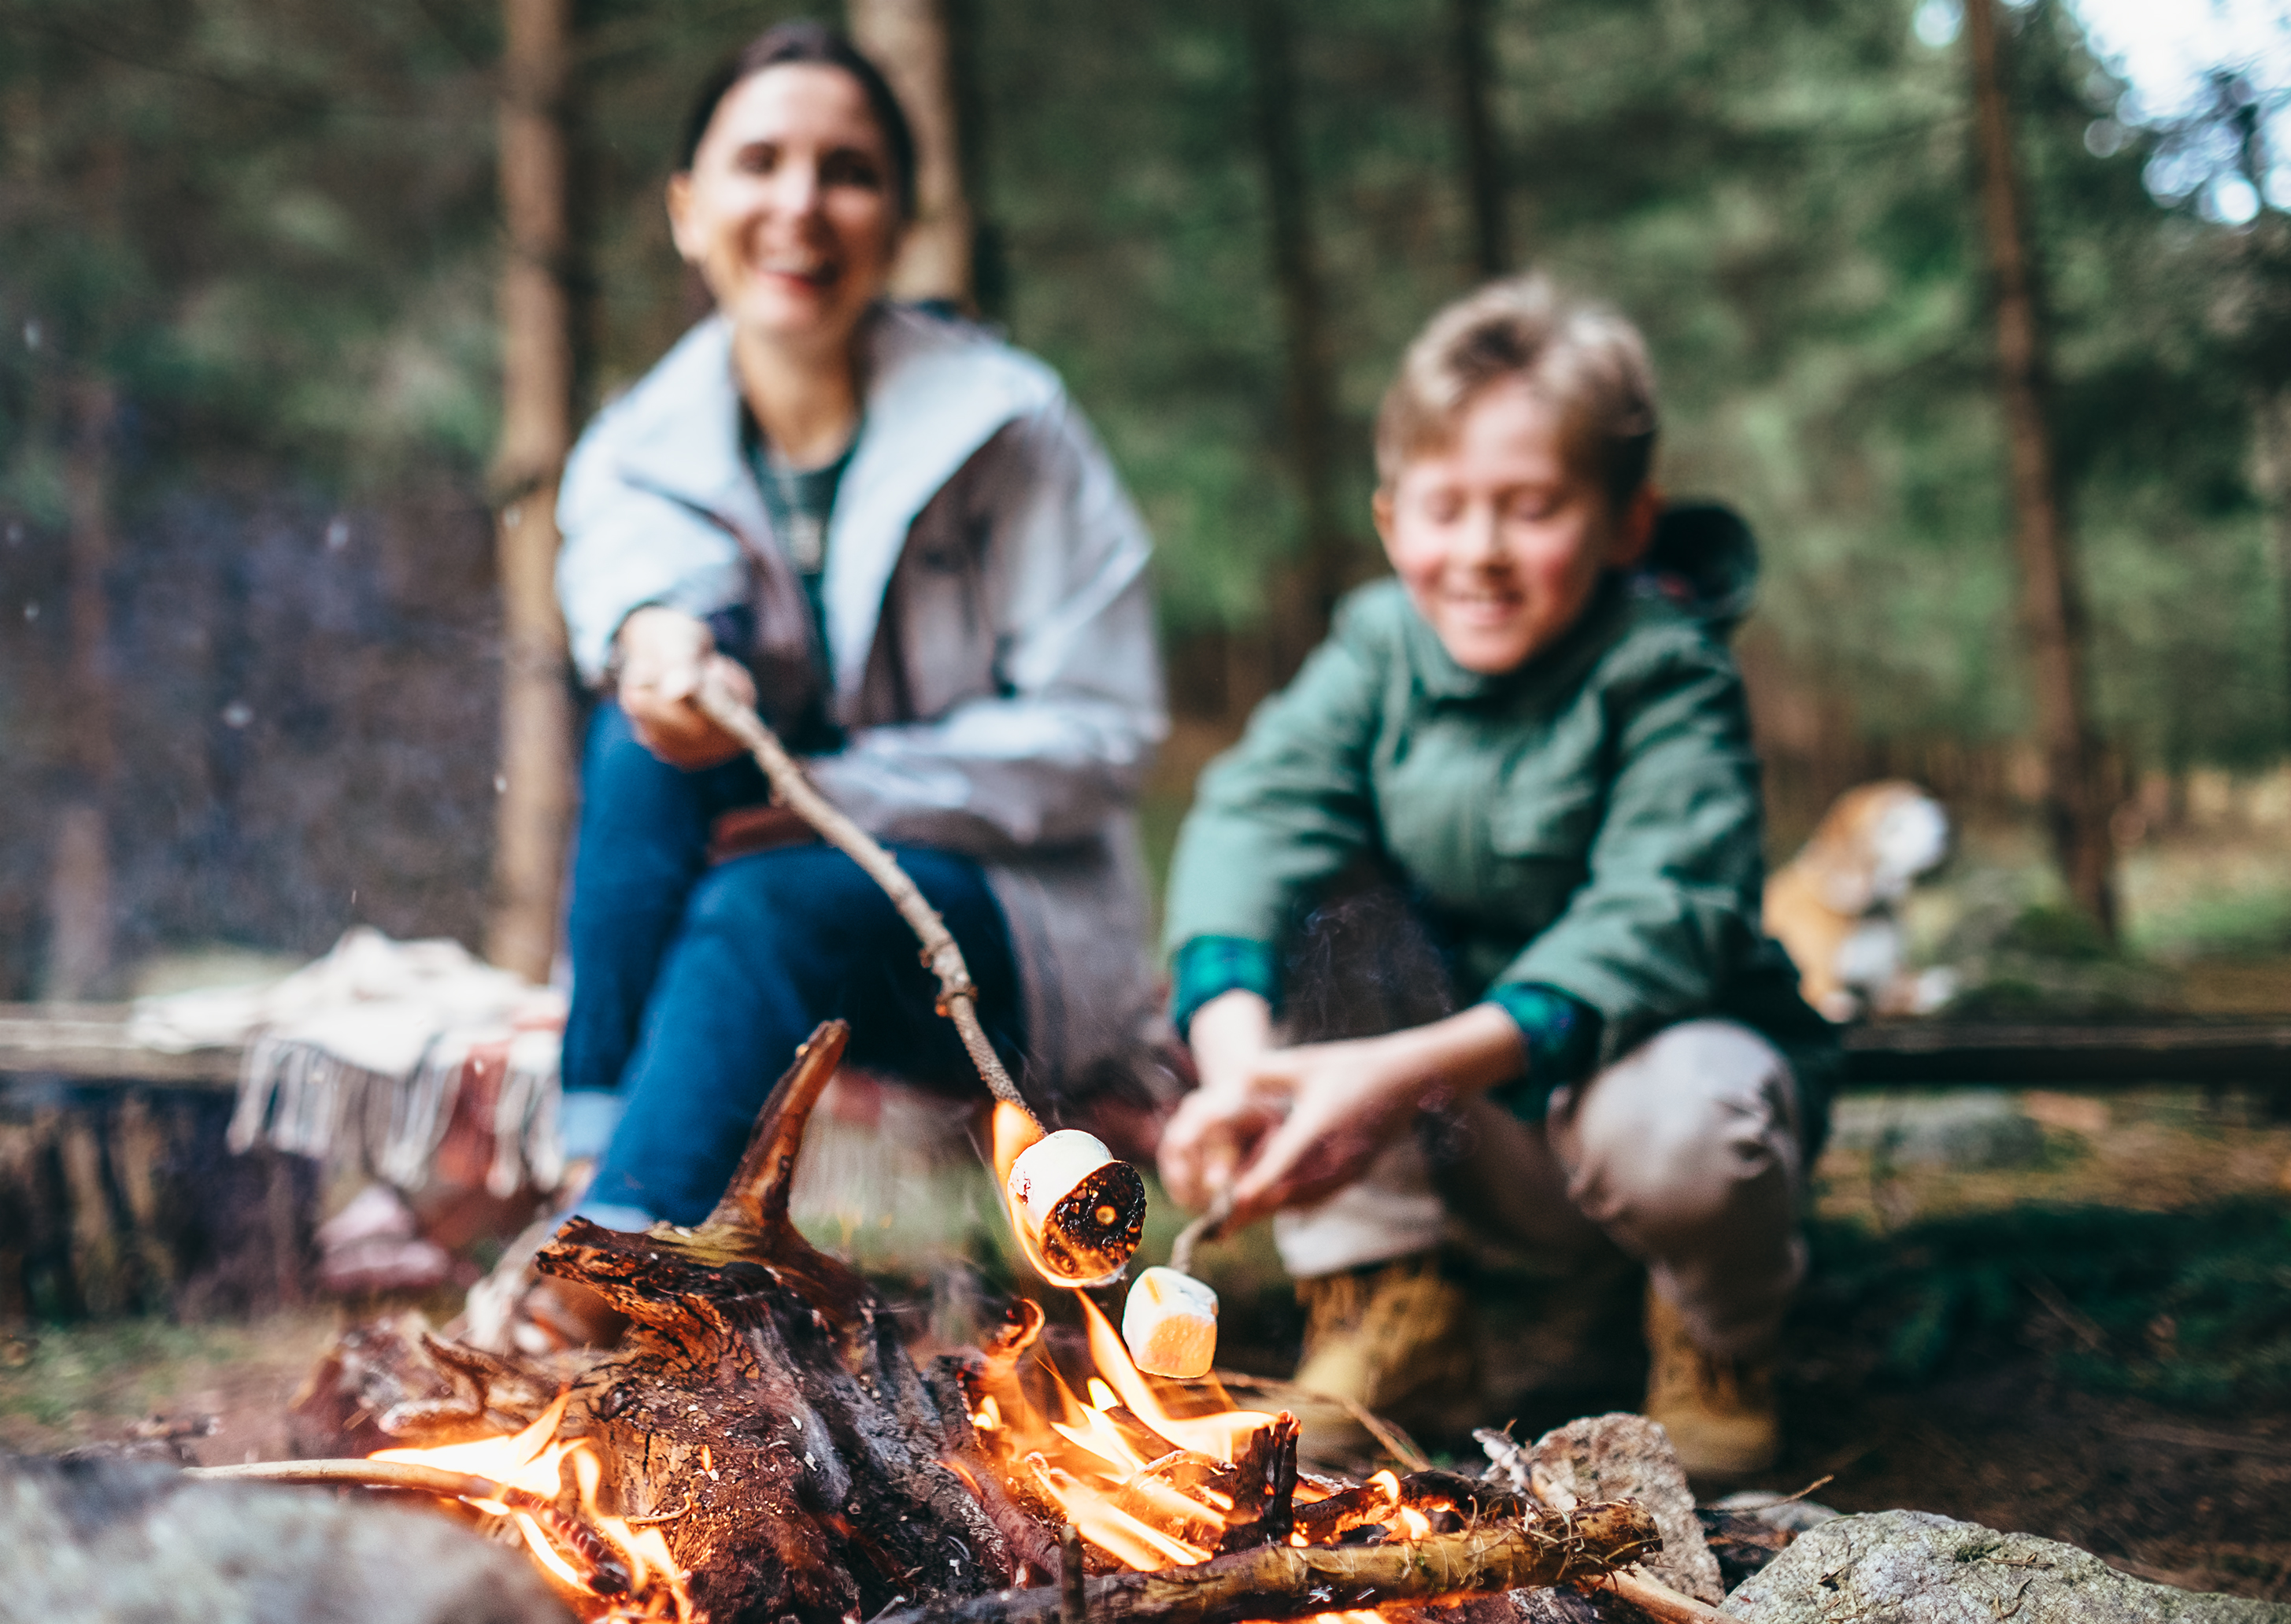 Mother and son cook marshmallow candies on the campfire